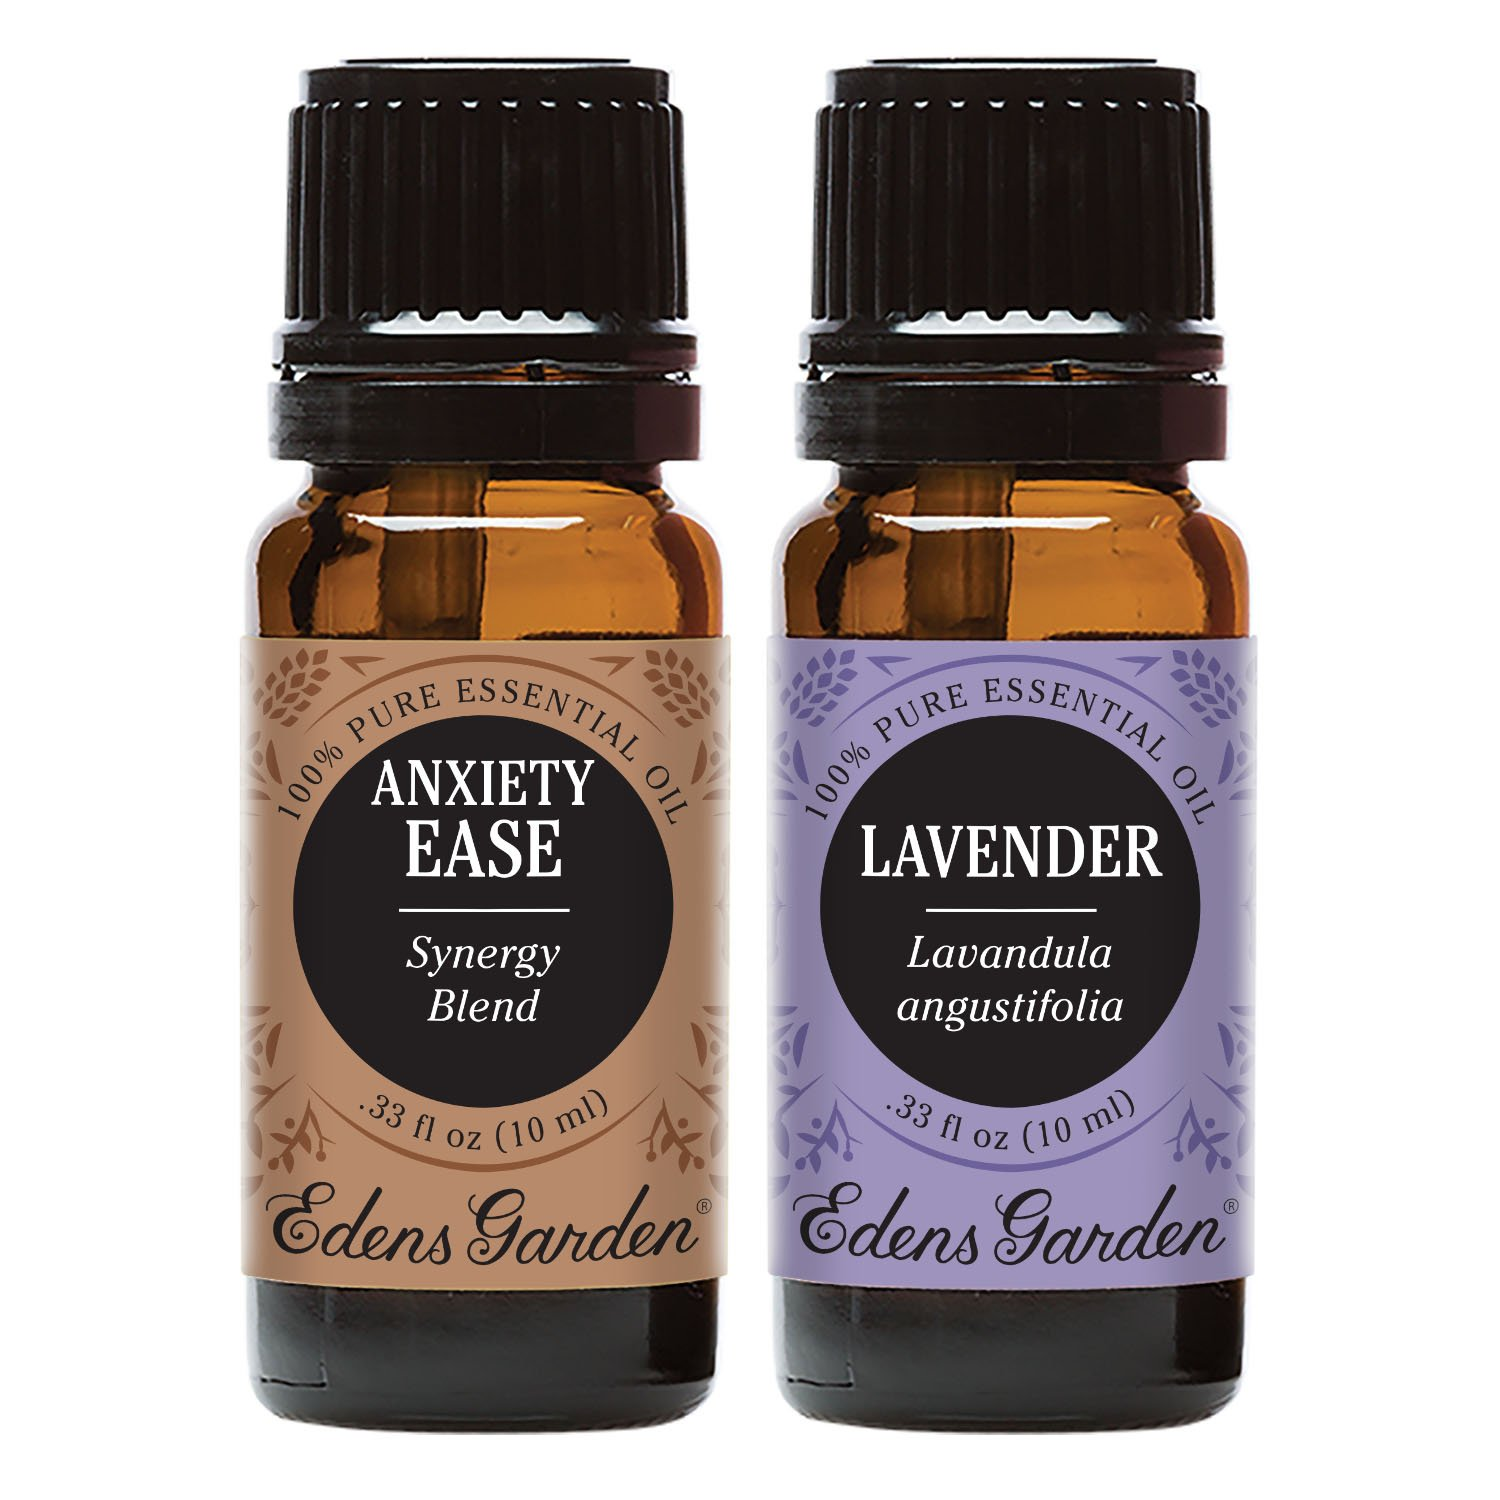 Edens Garden Anxiety Ease + Lavender Essential Oil Set, Best 100% Pure Aromatherapy Starter Kit (For Diffuser & Therapeutic Use), 10 ml